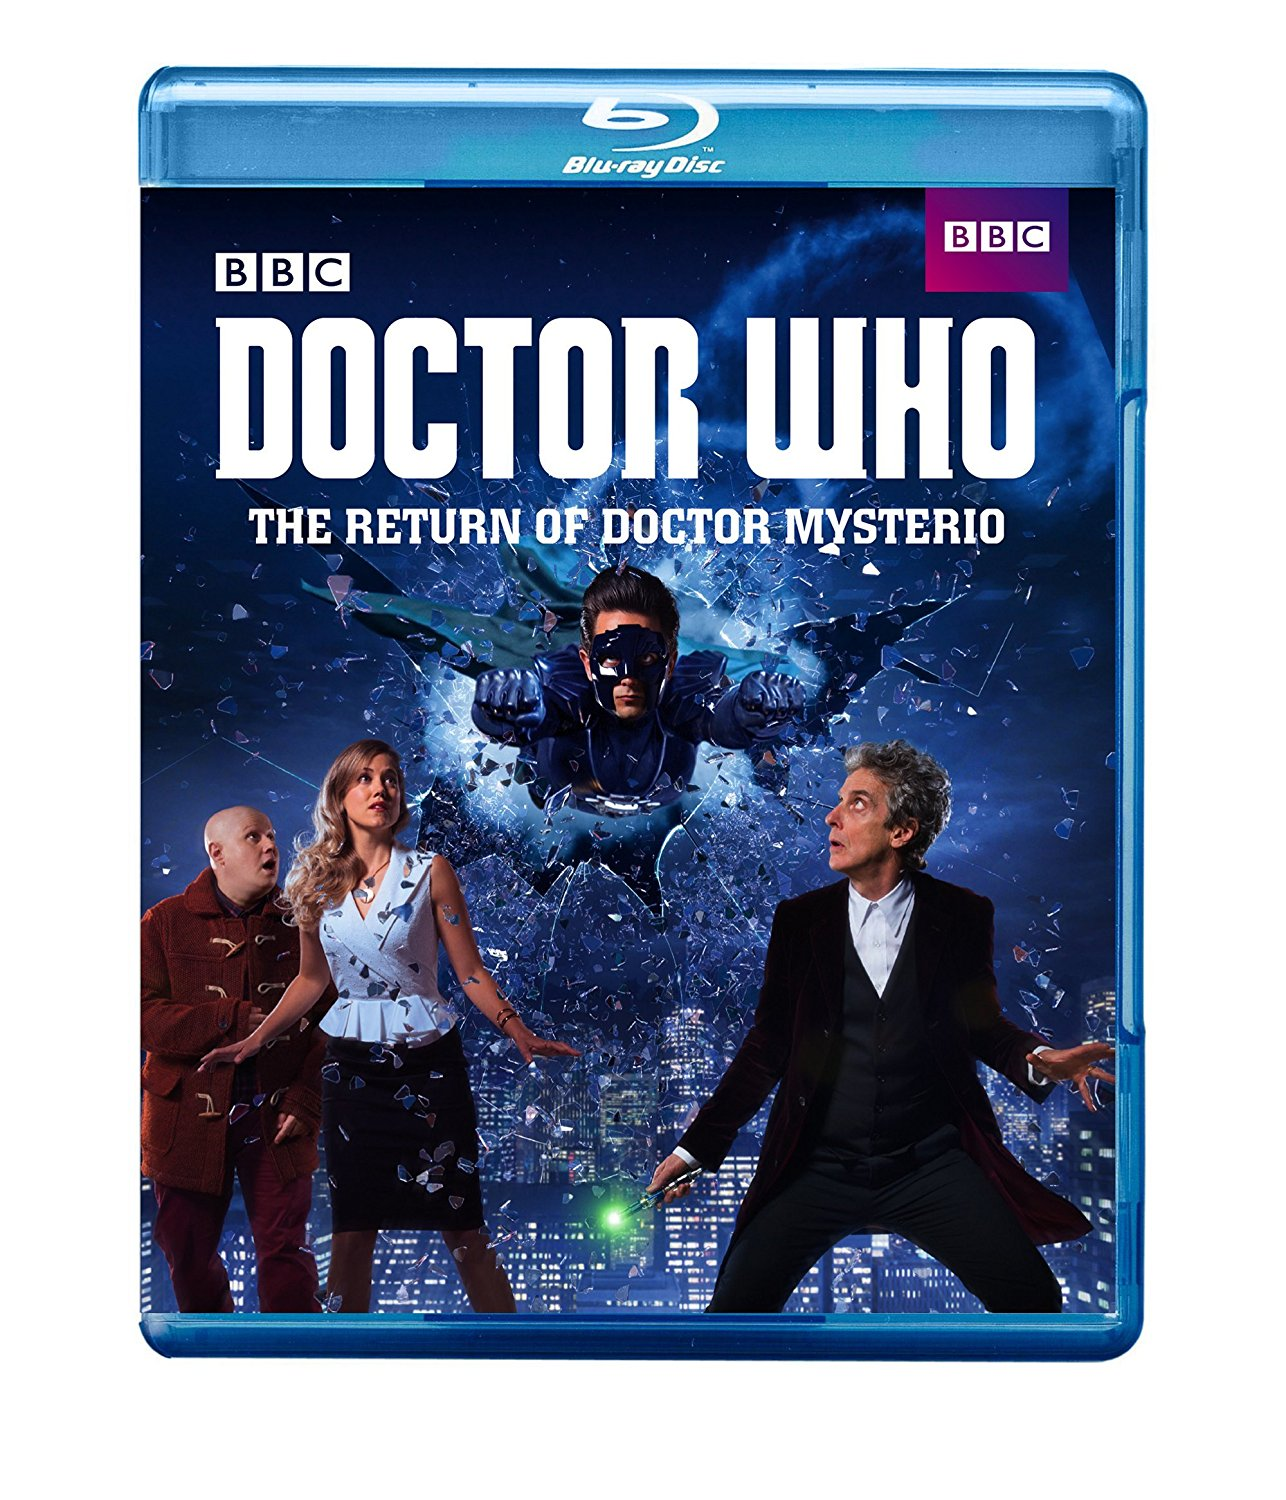 The Return of Doctor Mysterio: Blu-Ray